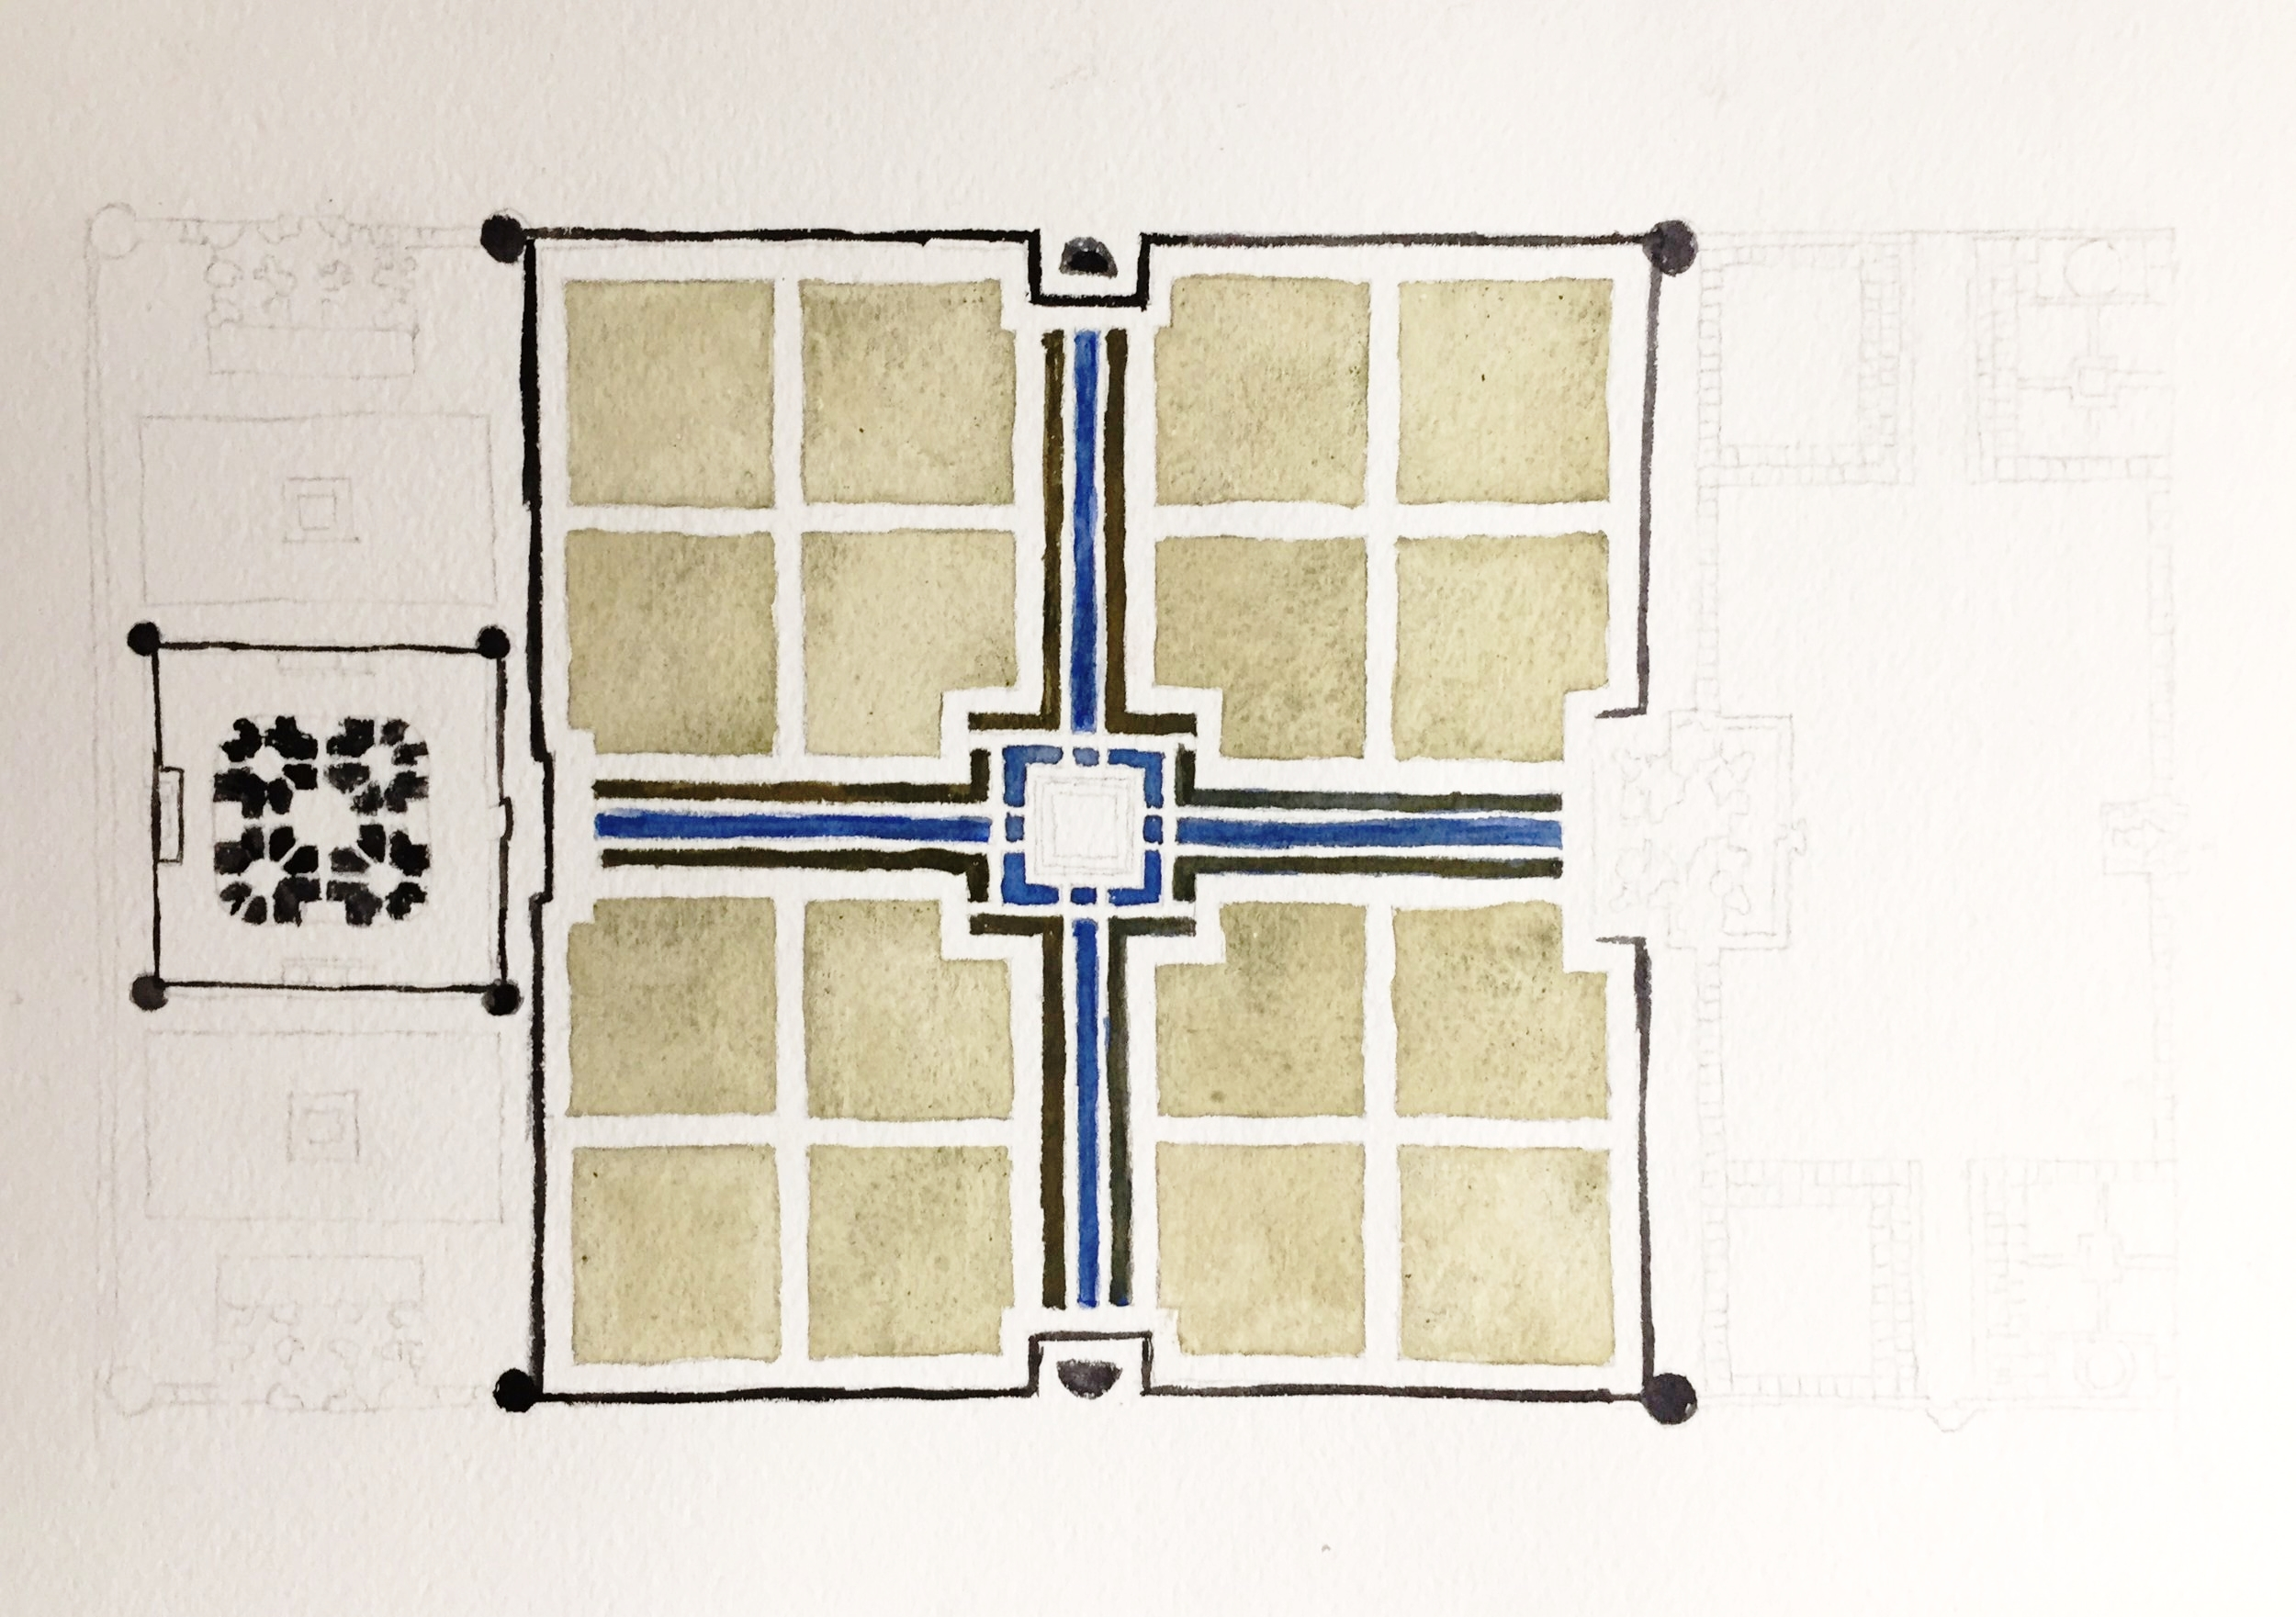 Plan of the Taj Mahal.  Watercolor on Arches paper.